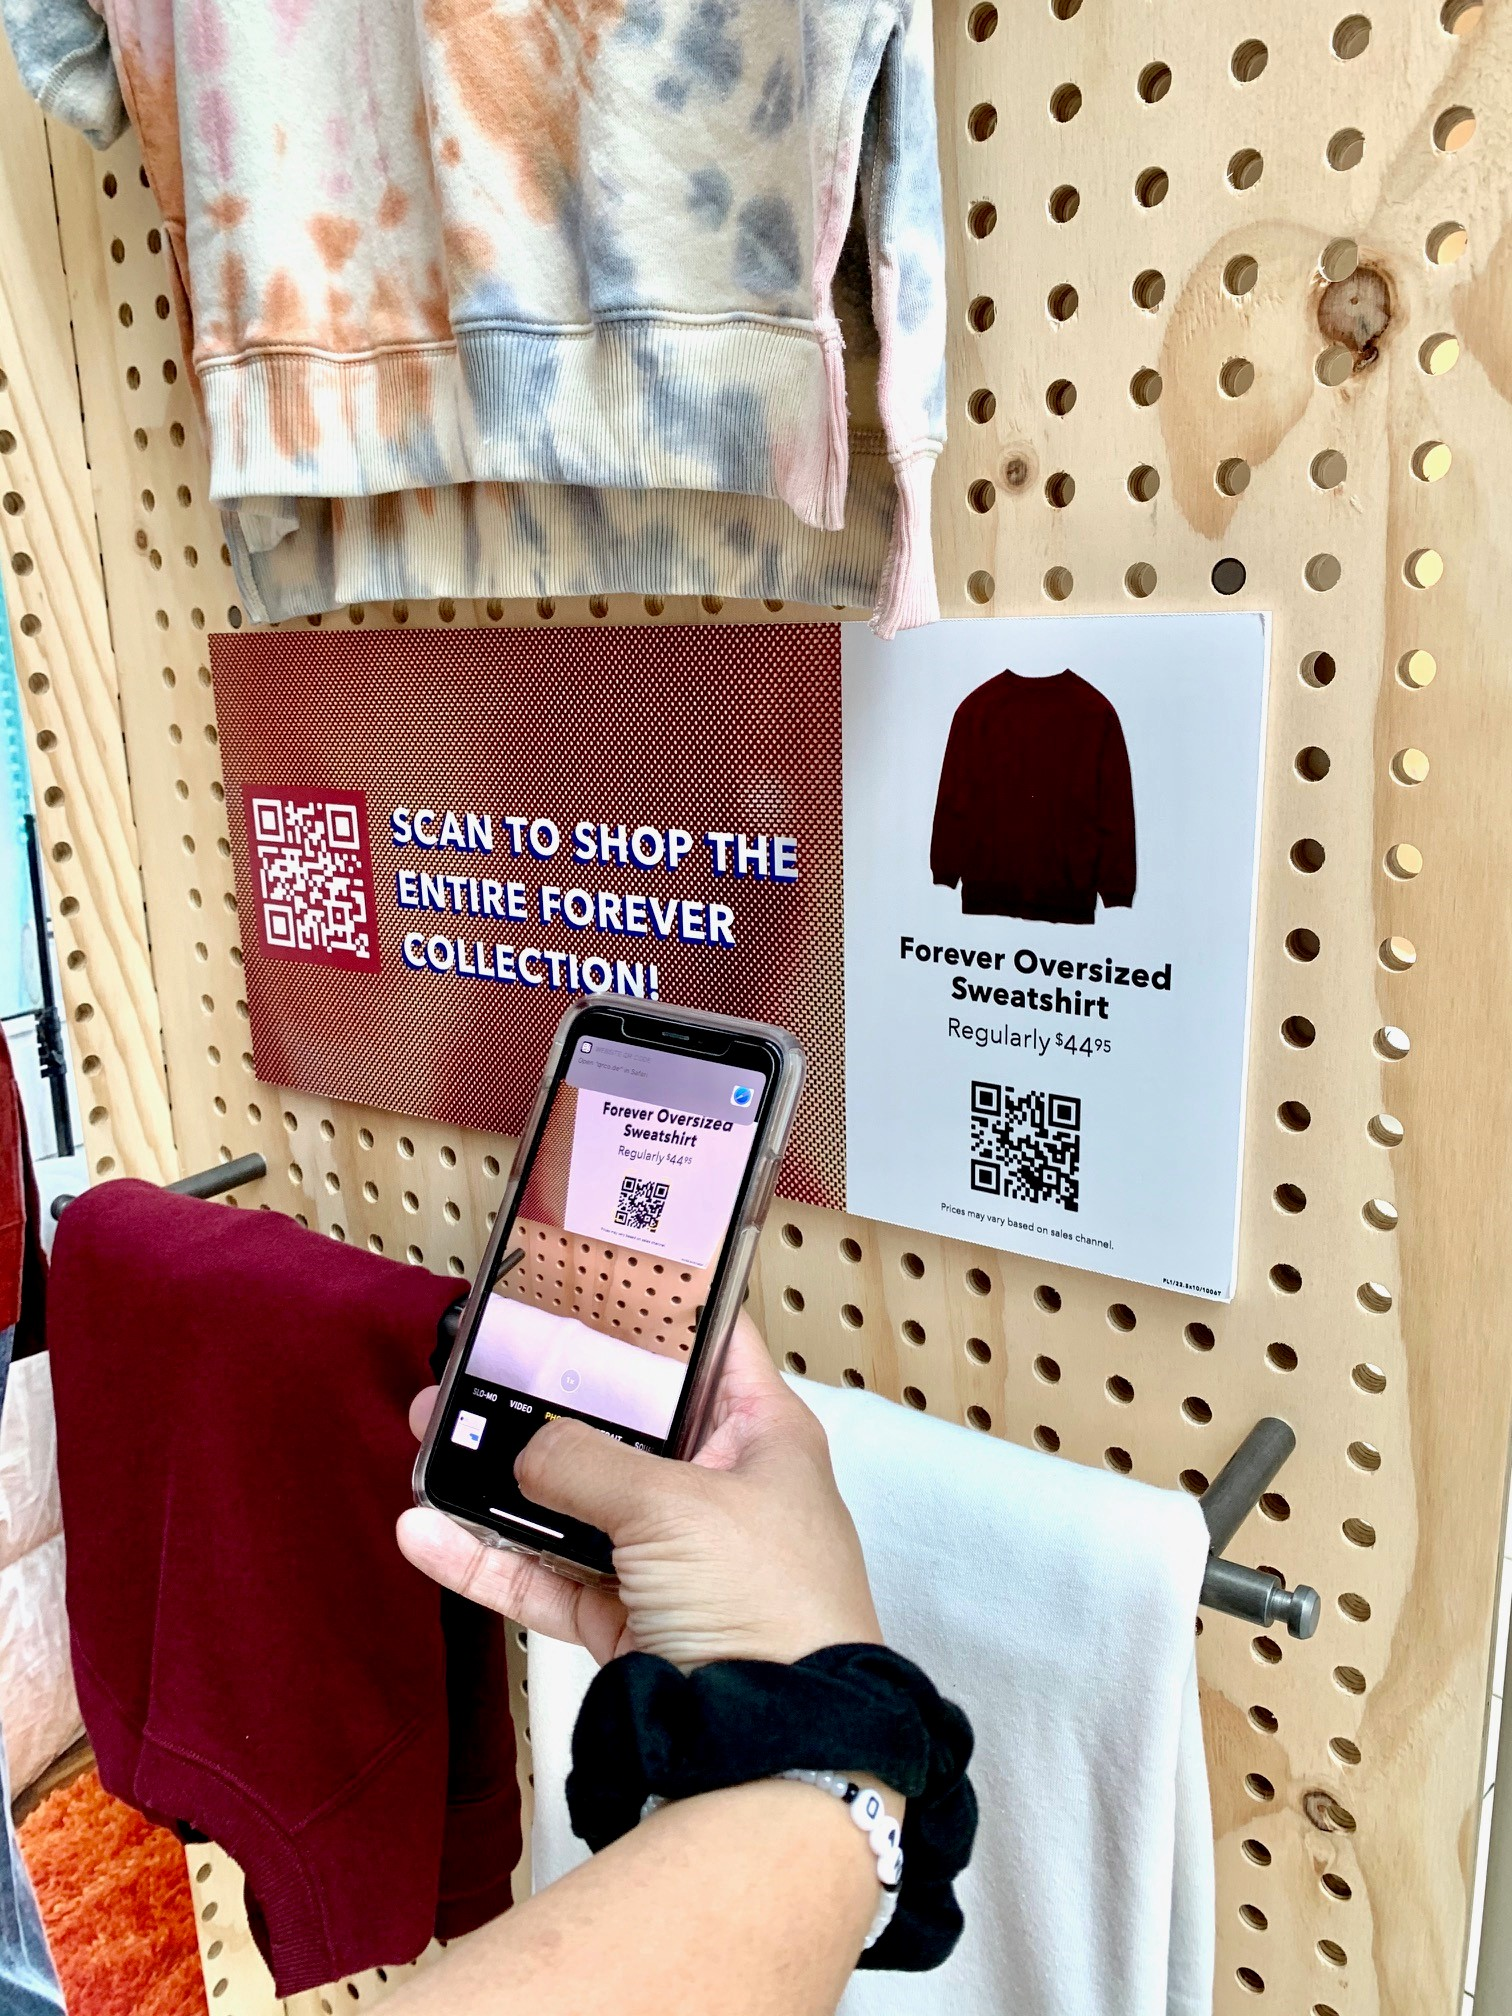 Scanning QR Code from Mobile Display.  Wording says: Scan to shop the entire forever collection.  Forever Oversized Sweatshirt Regularly $44.95